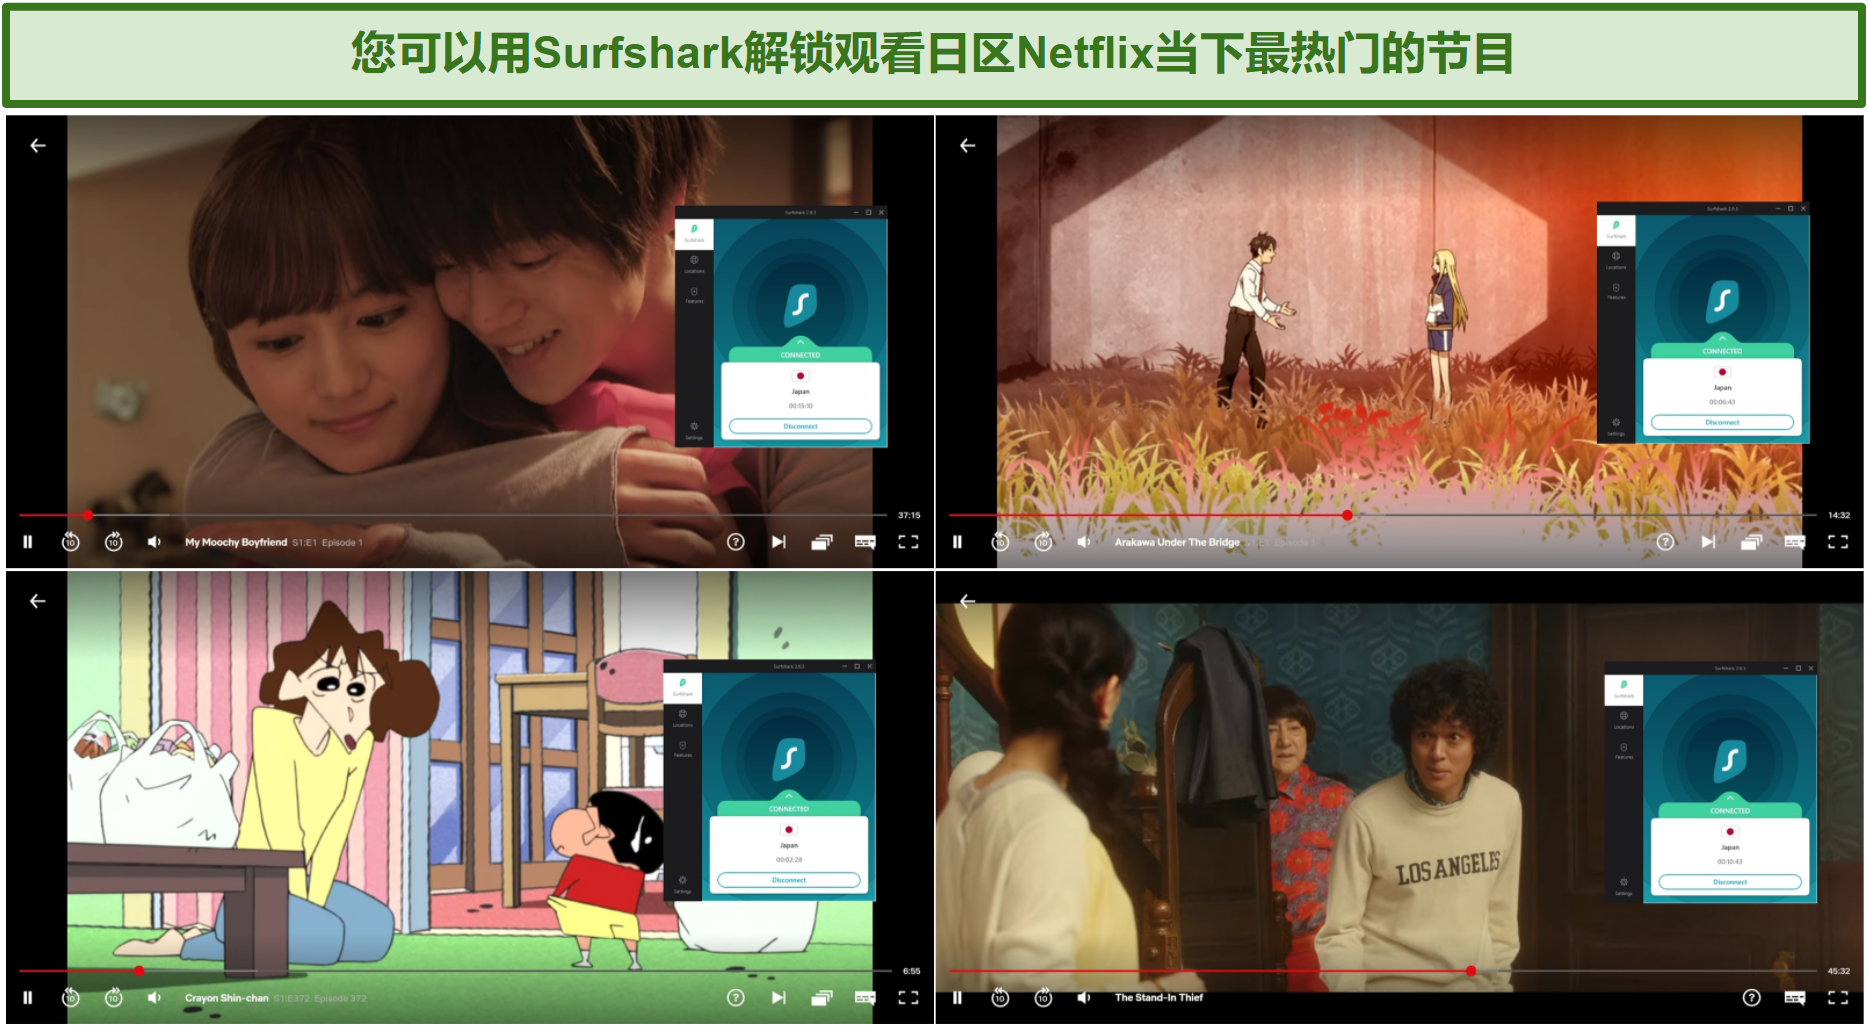 Surfshark在Netflix日本上取消阻止我的Moochy男朋友,Arakawa在桥下,Crayon Shin-chan和The Stand-in Thief的屏幕截图